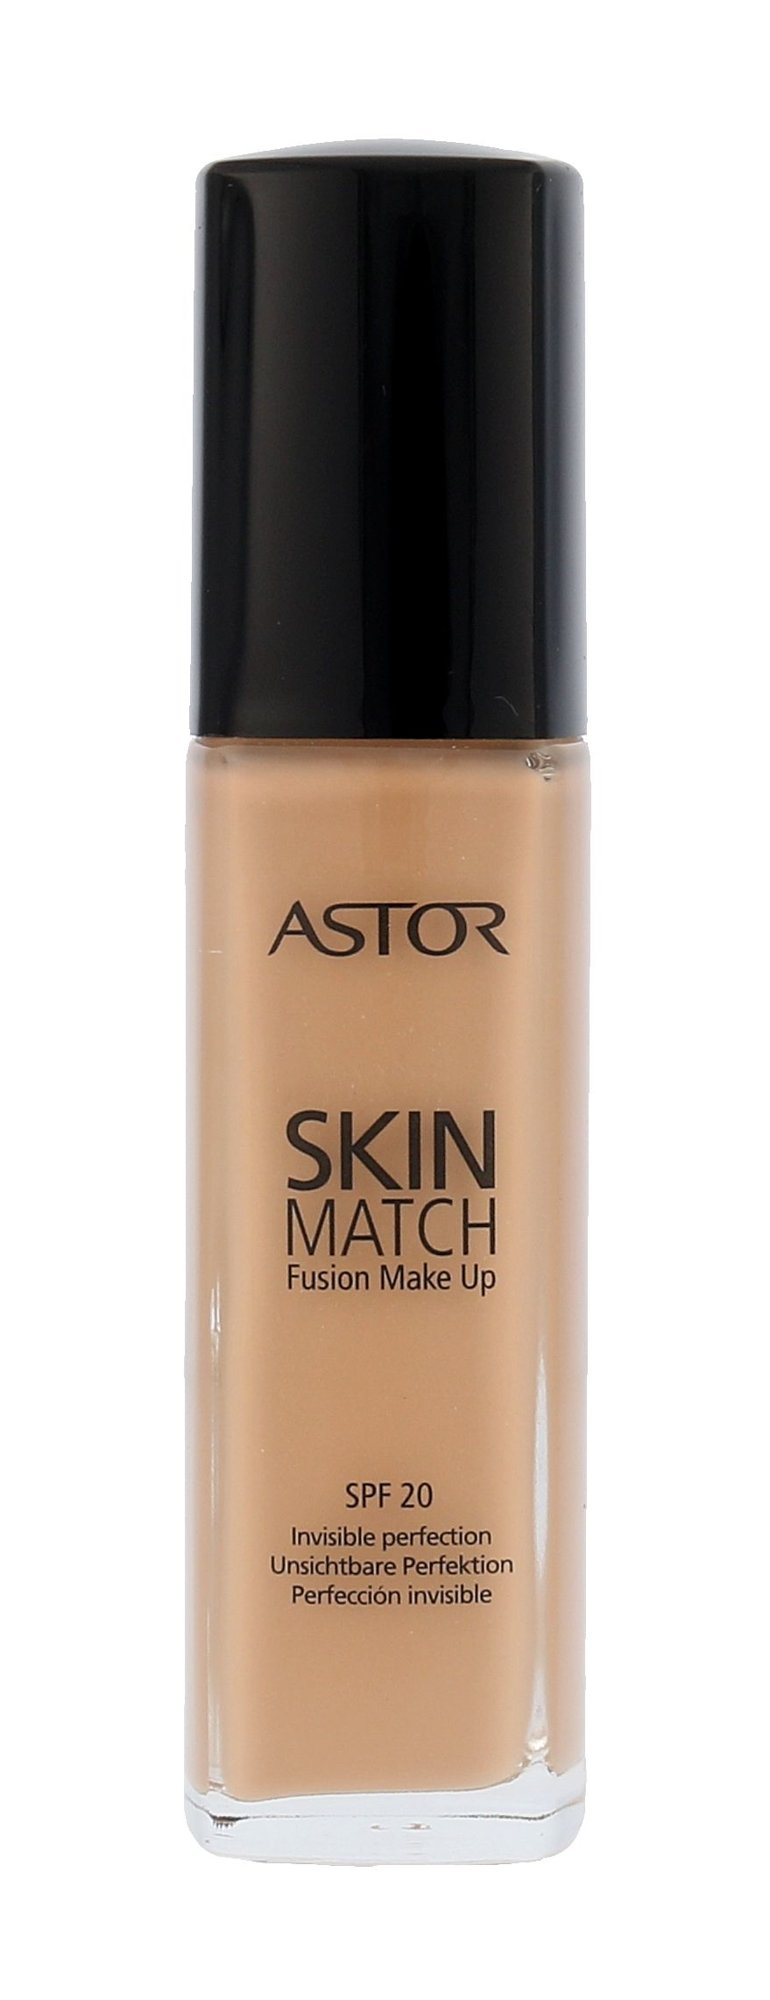 ASTOR Skin Match Cosmetic 30ml 202 Natural